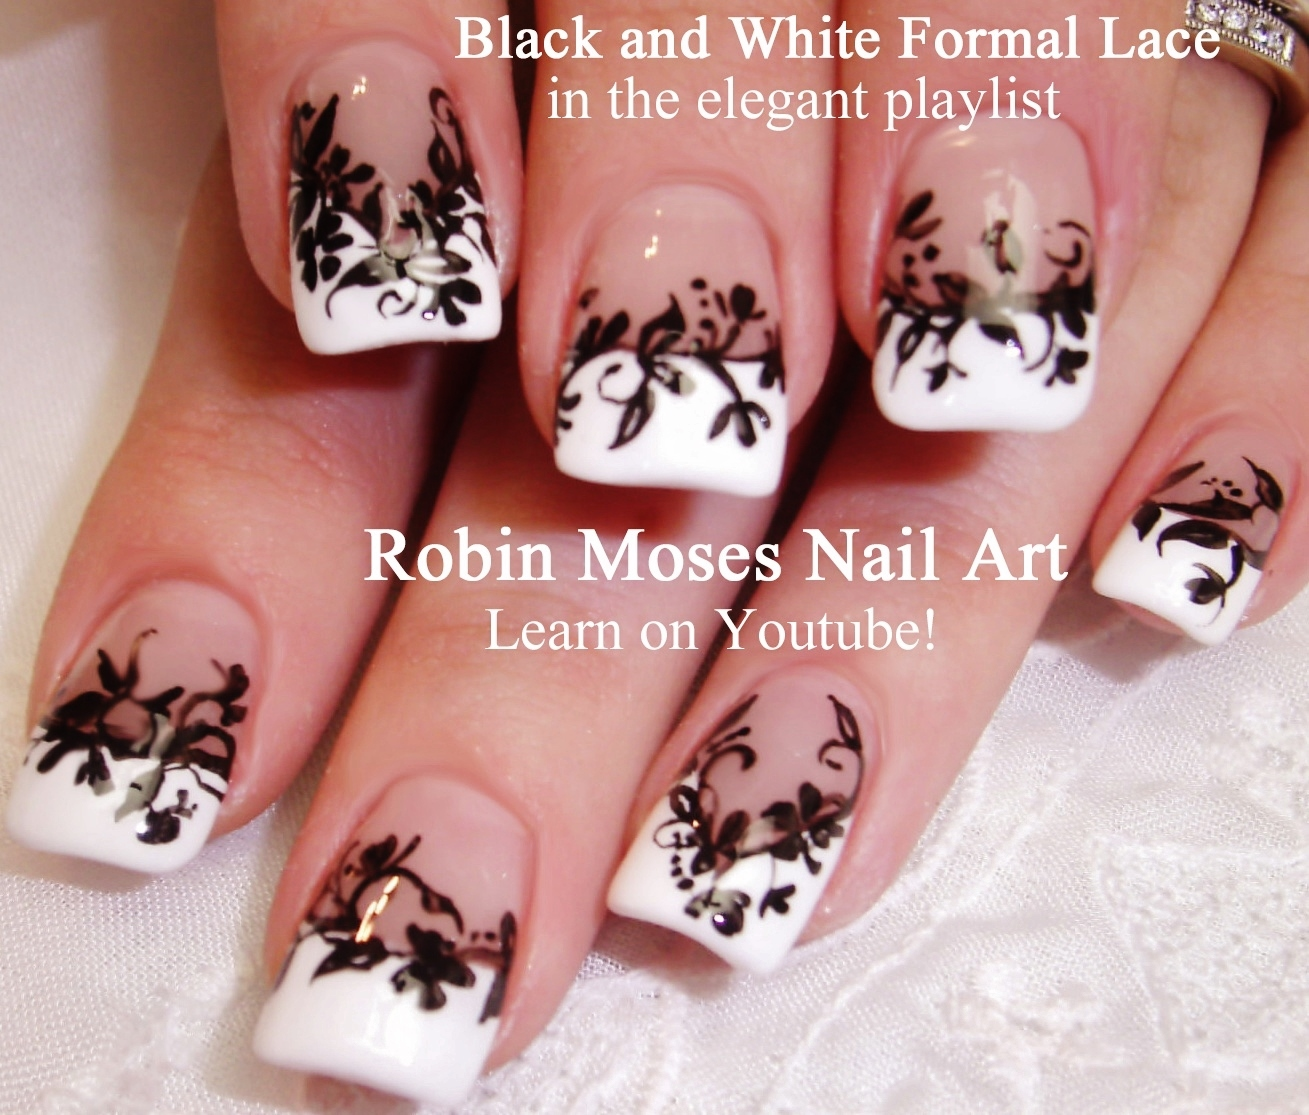 Robin moses nail art black and white nail art black and white play now prinsesfo Choice Image